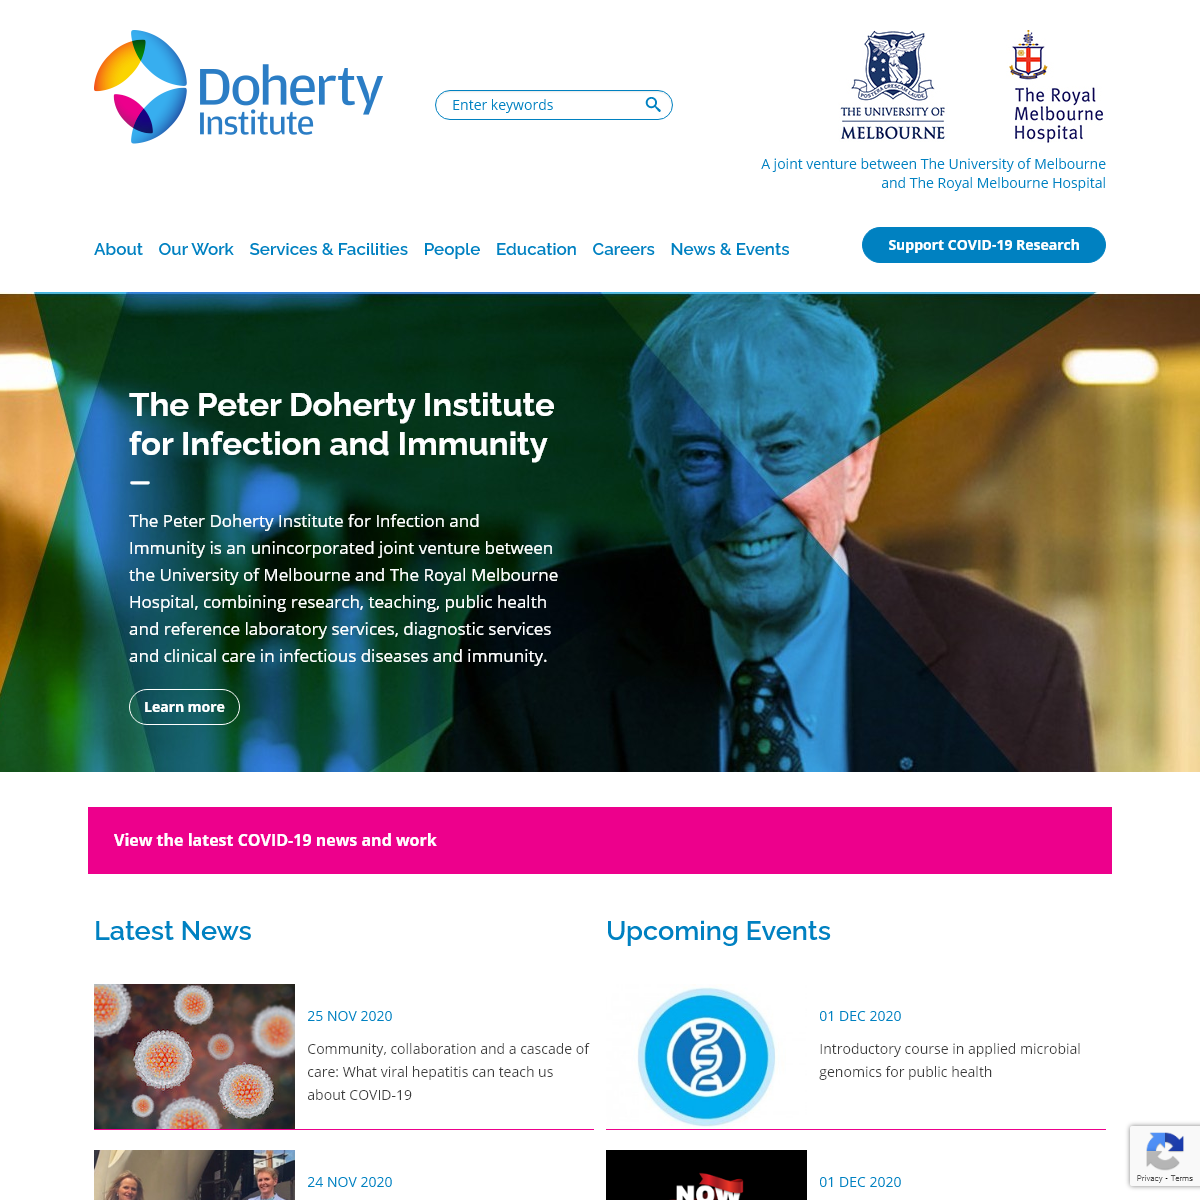 The Peter Doherty Institute for Infection and Immunity - Doherty Website